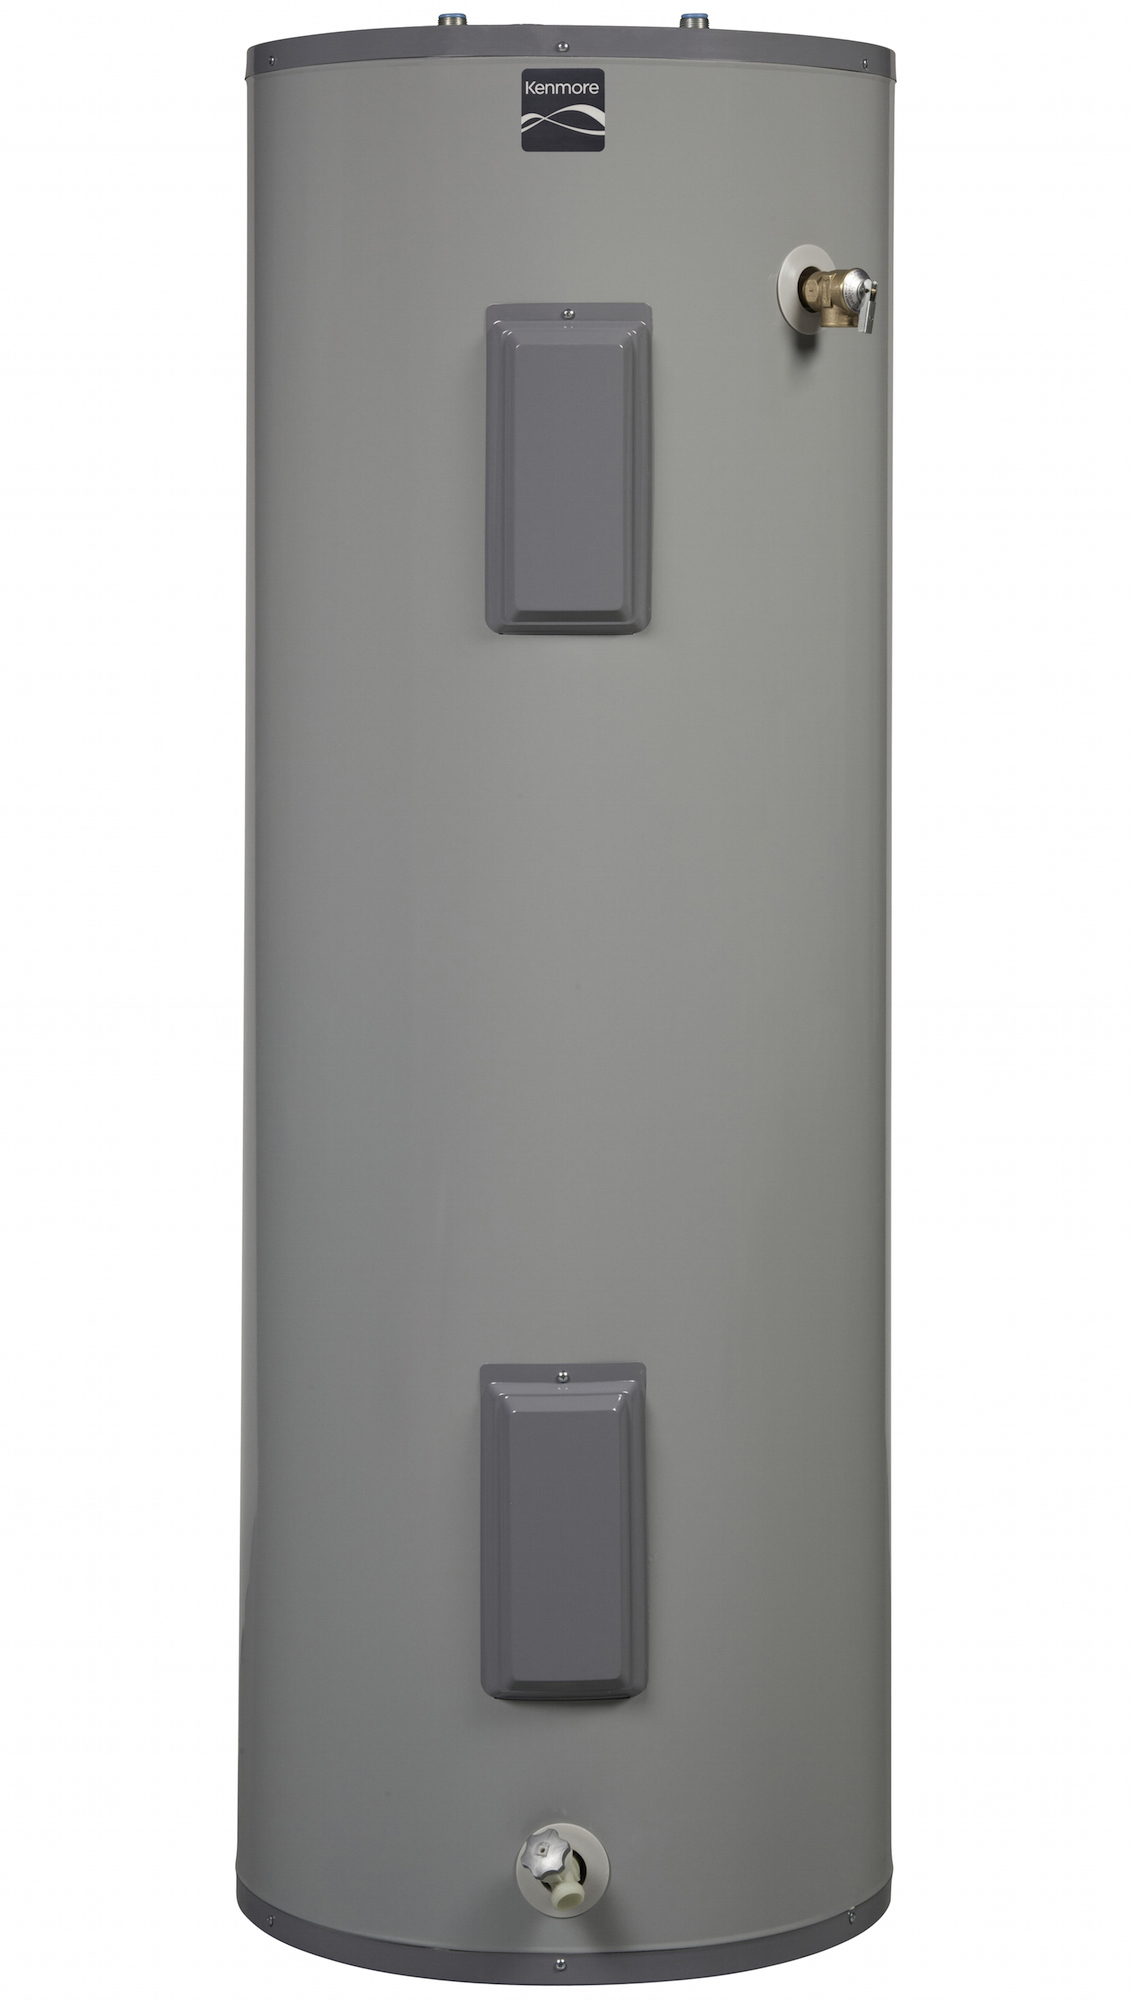 Kenmore 58950 50 gal. 9-Year Tall Electric Water Heater